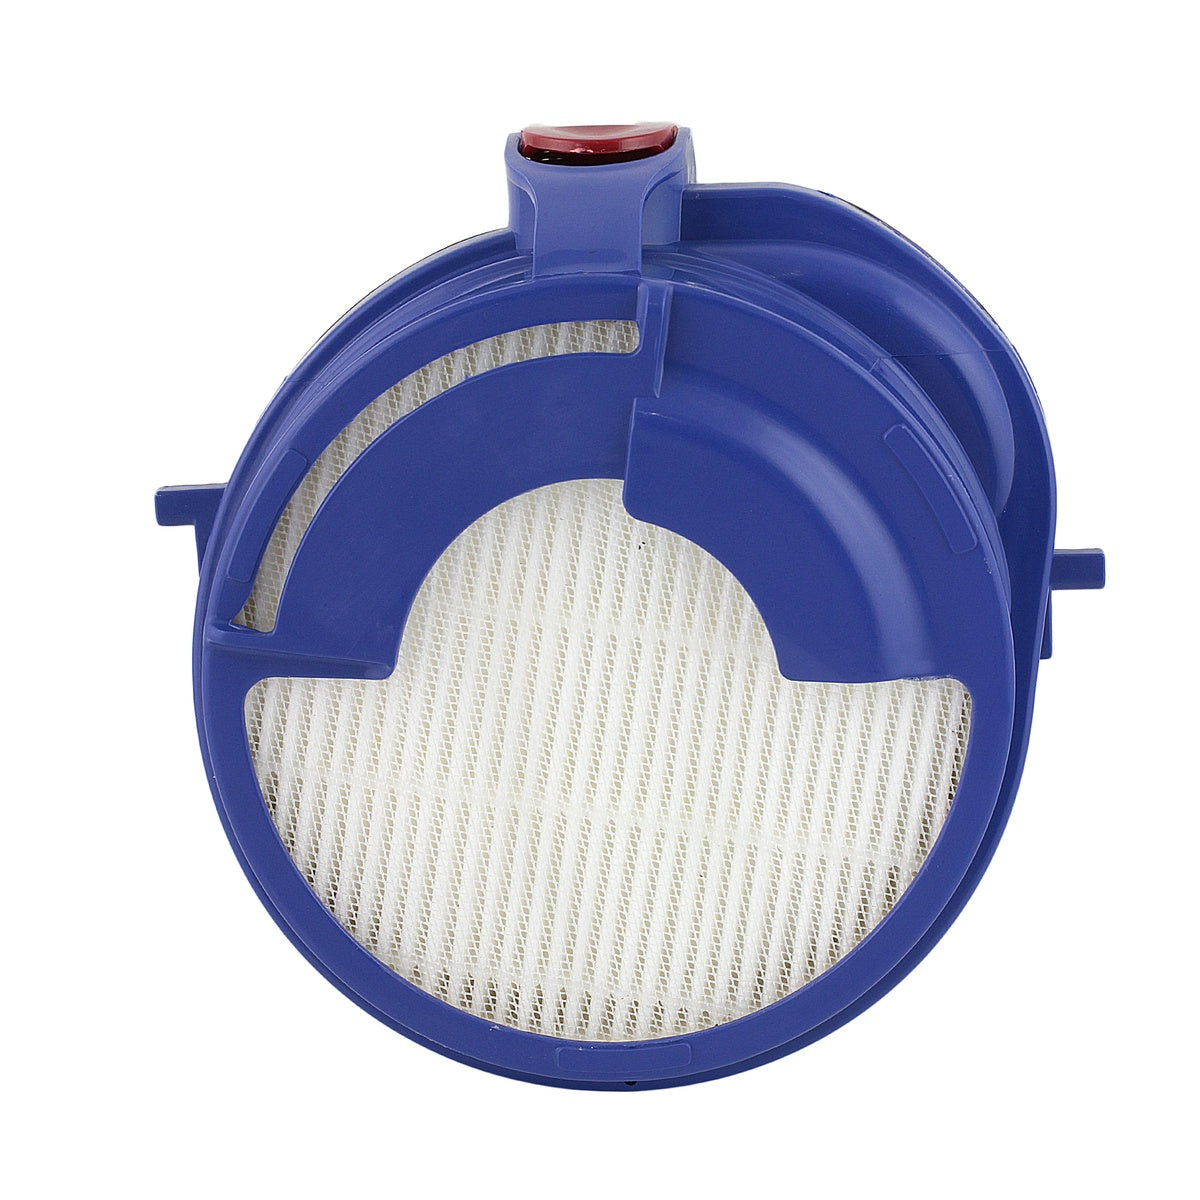 Dyson DC24 Washable Post Motor HEPA Filter Part # 915928-01 91592801